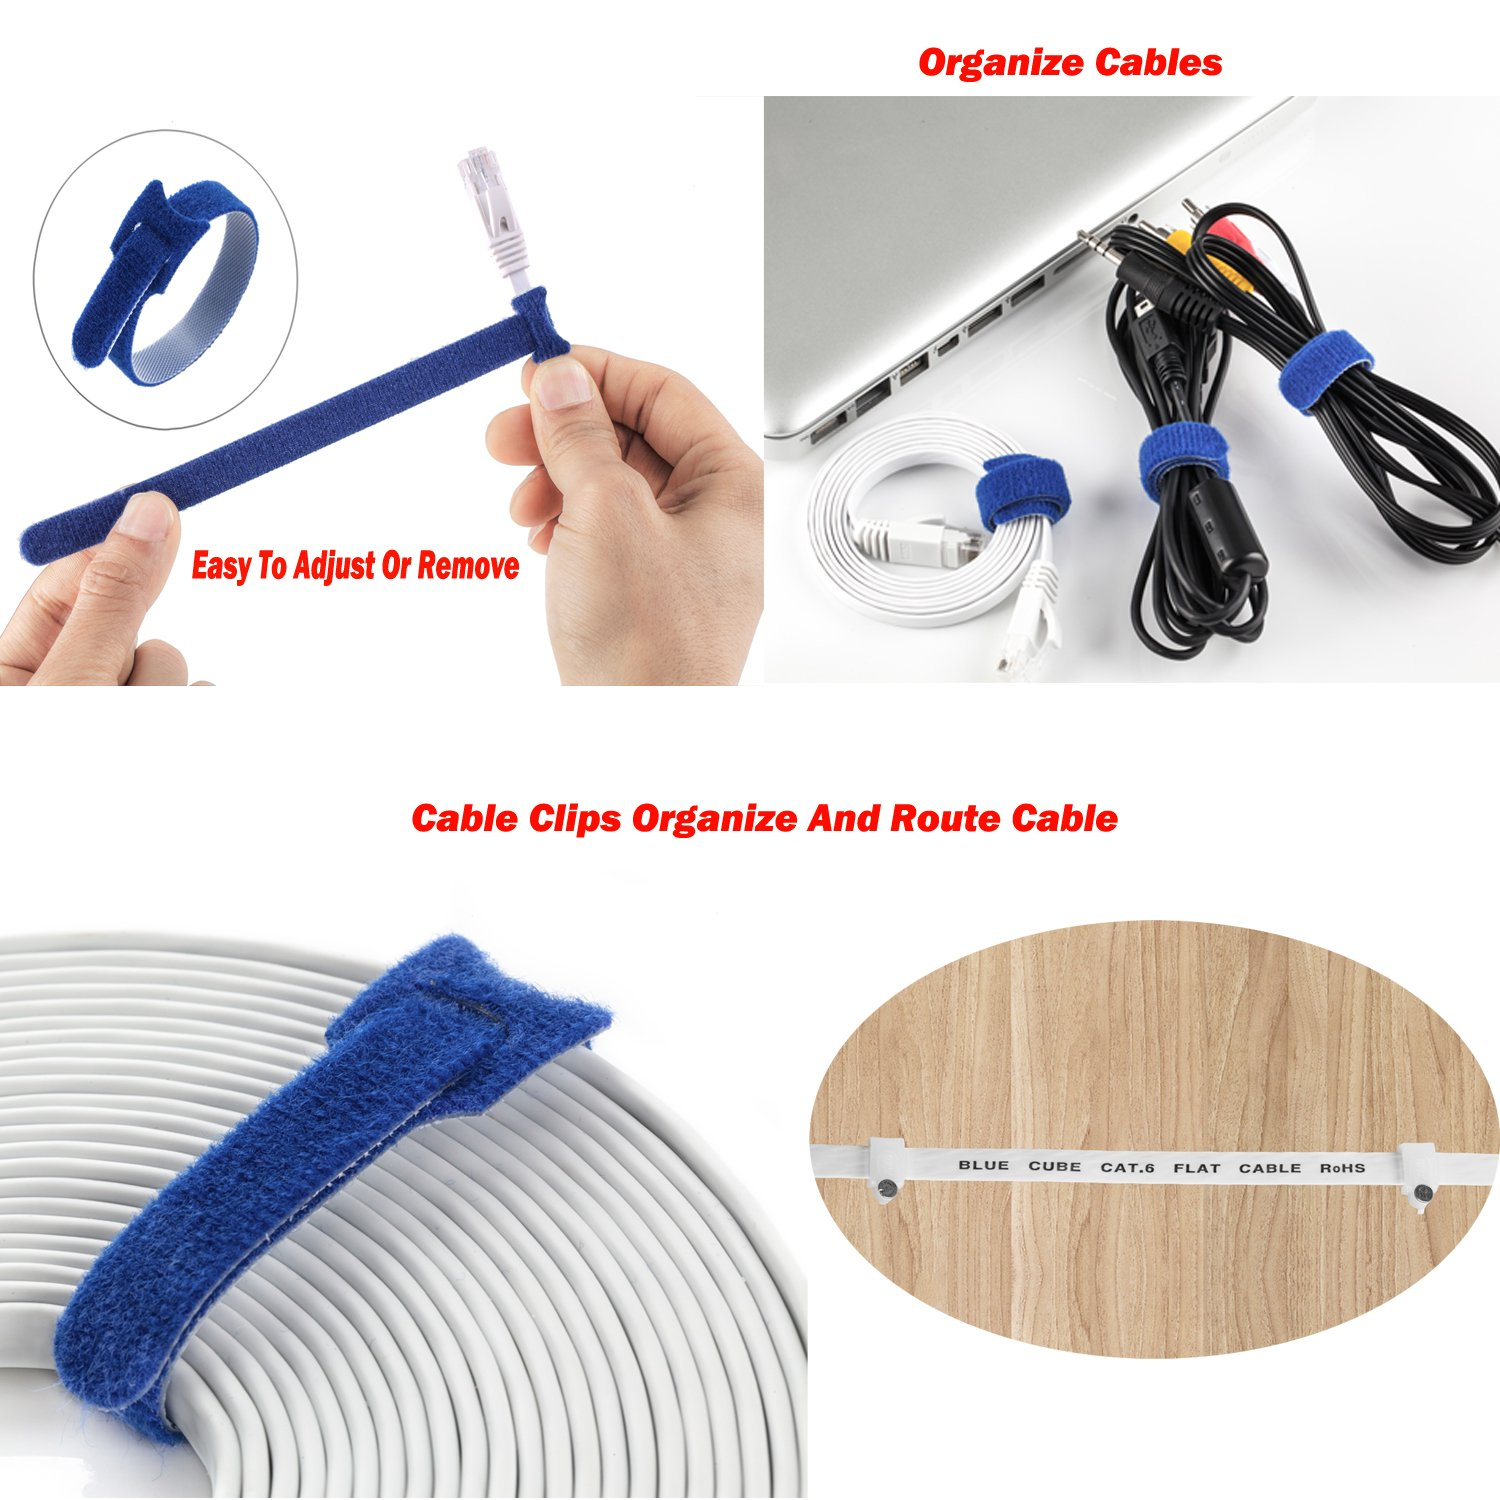 BlueCube Network Network Cable with Snagless RJ45 Connectors 100 Feet White ++ BlueCube Plus Flat CAT6 Ethernet Cable 100 Feet RJ45 Flat Ethernet Patch Cable Internet Cable